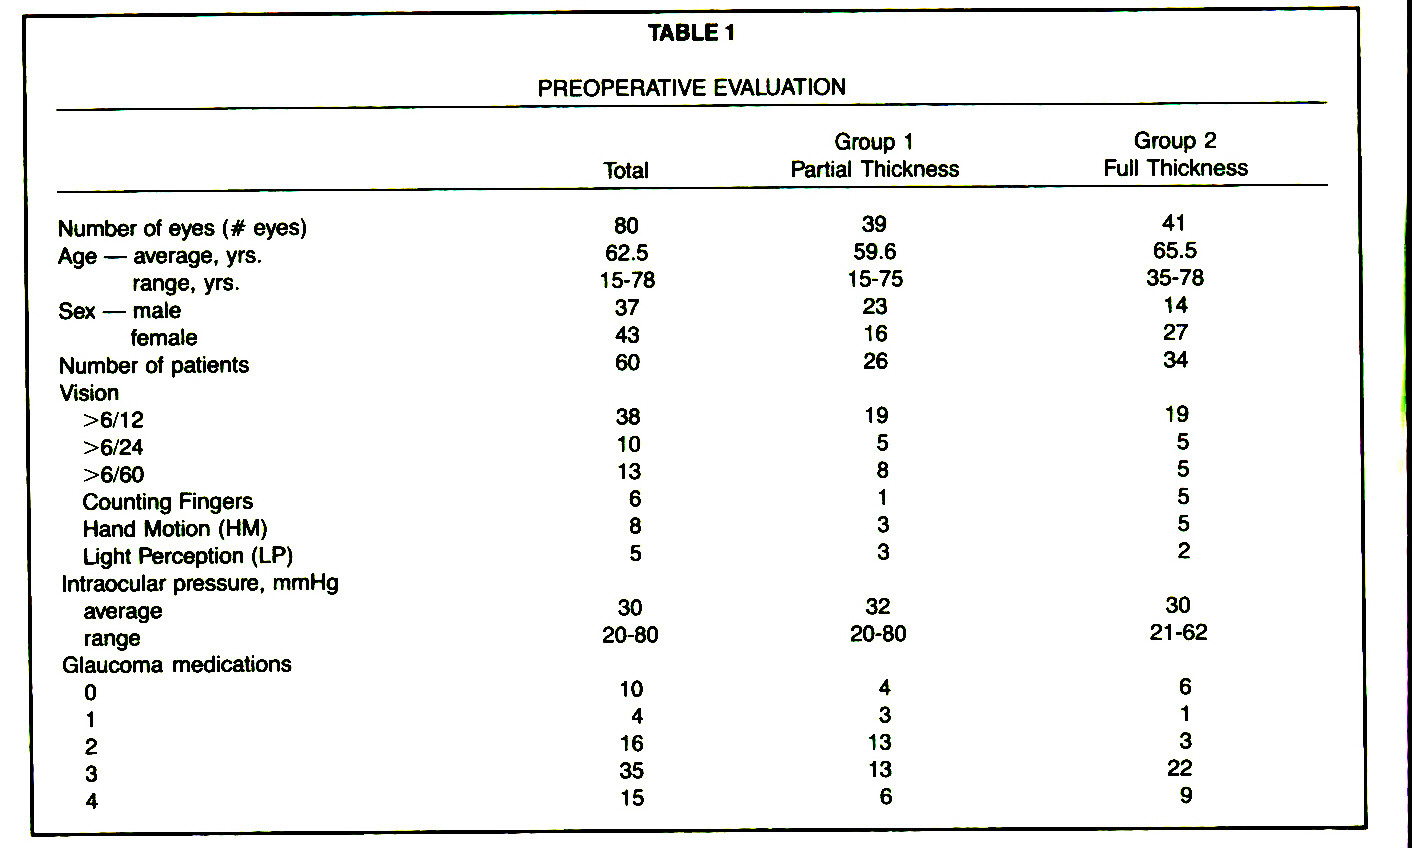 TABLE 1PREOPERATIVE EVALUATION